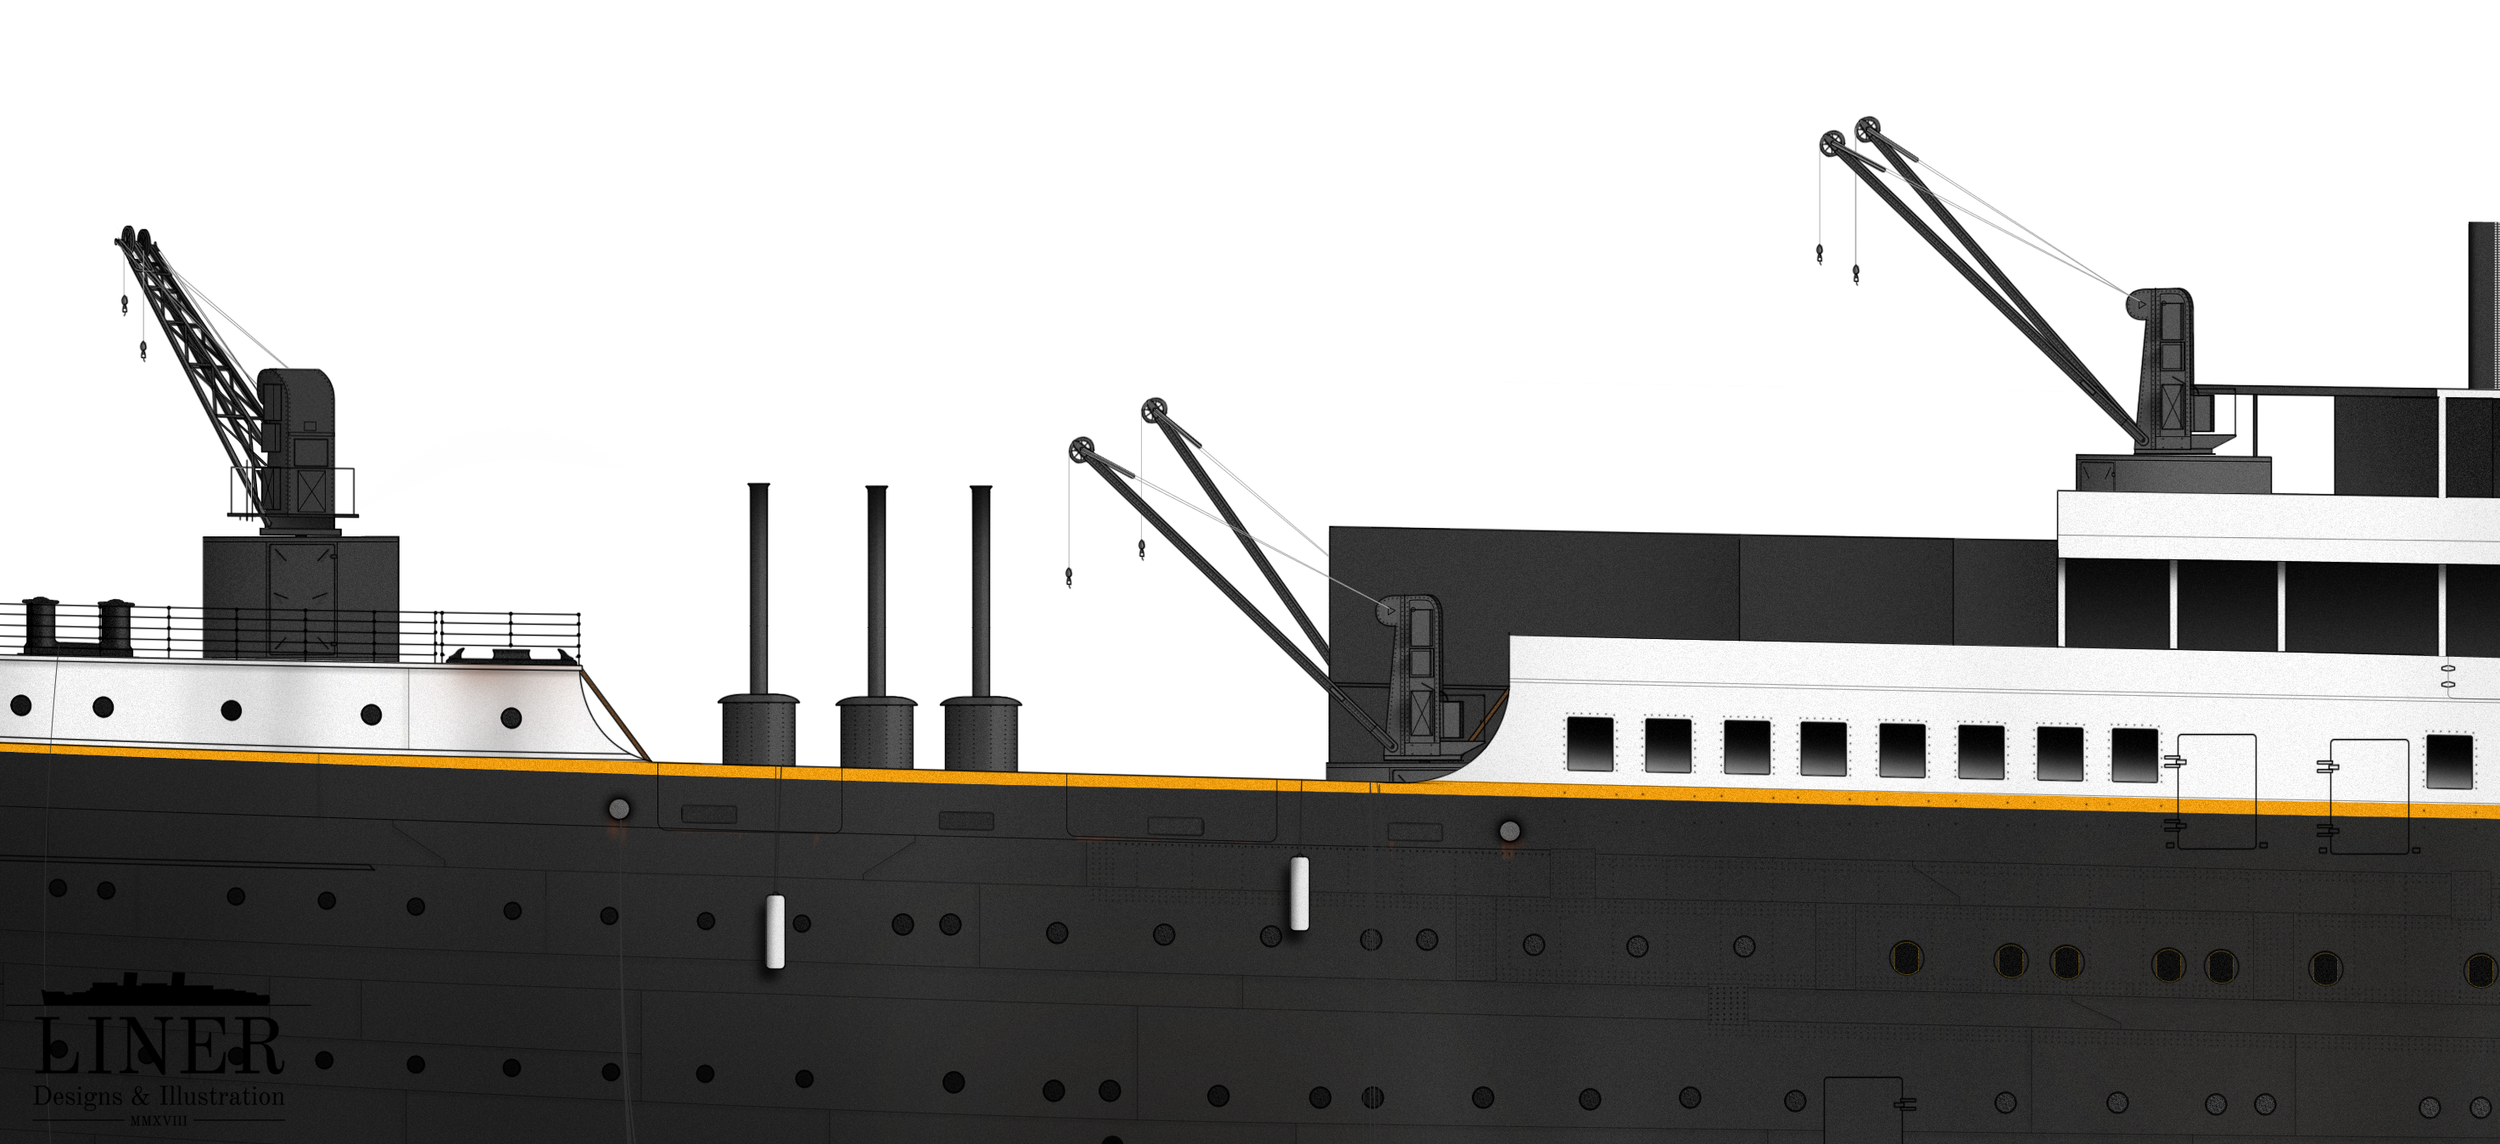 Titanic's aft promenade area. The chimneys are, presumably, from some temporary boilers or furnaces positioned on the well-deck during construction. Also note the fenders strung out over the side of the well-deck.